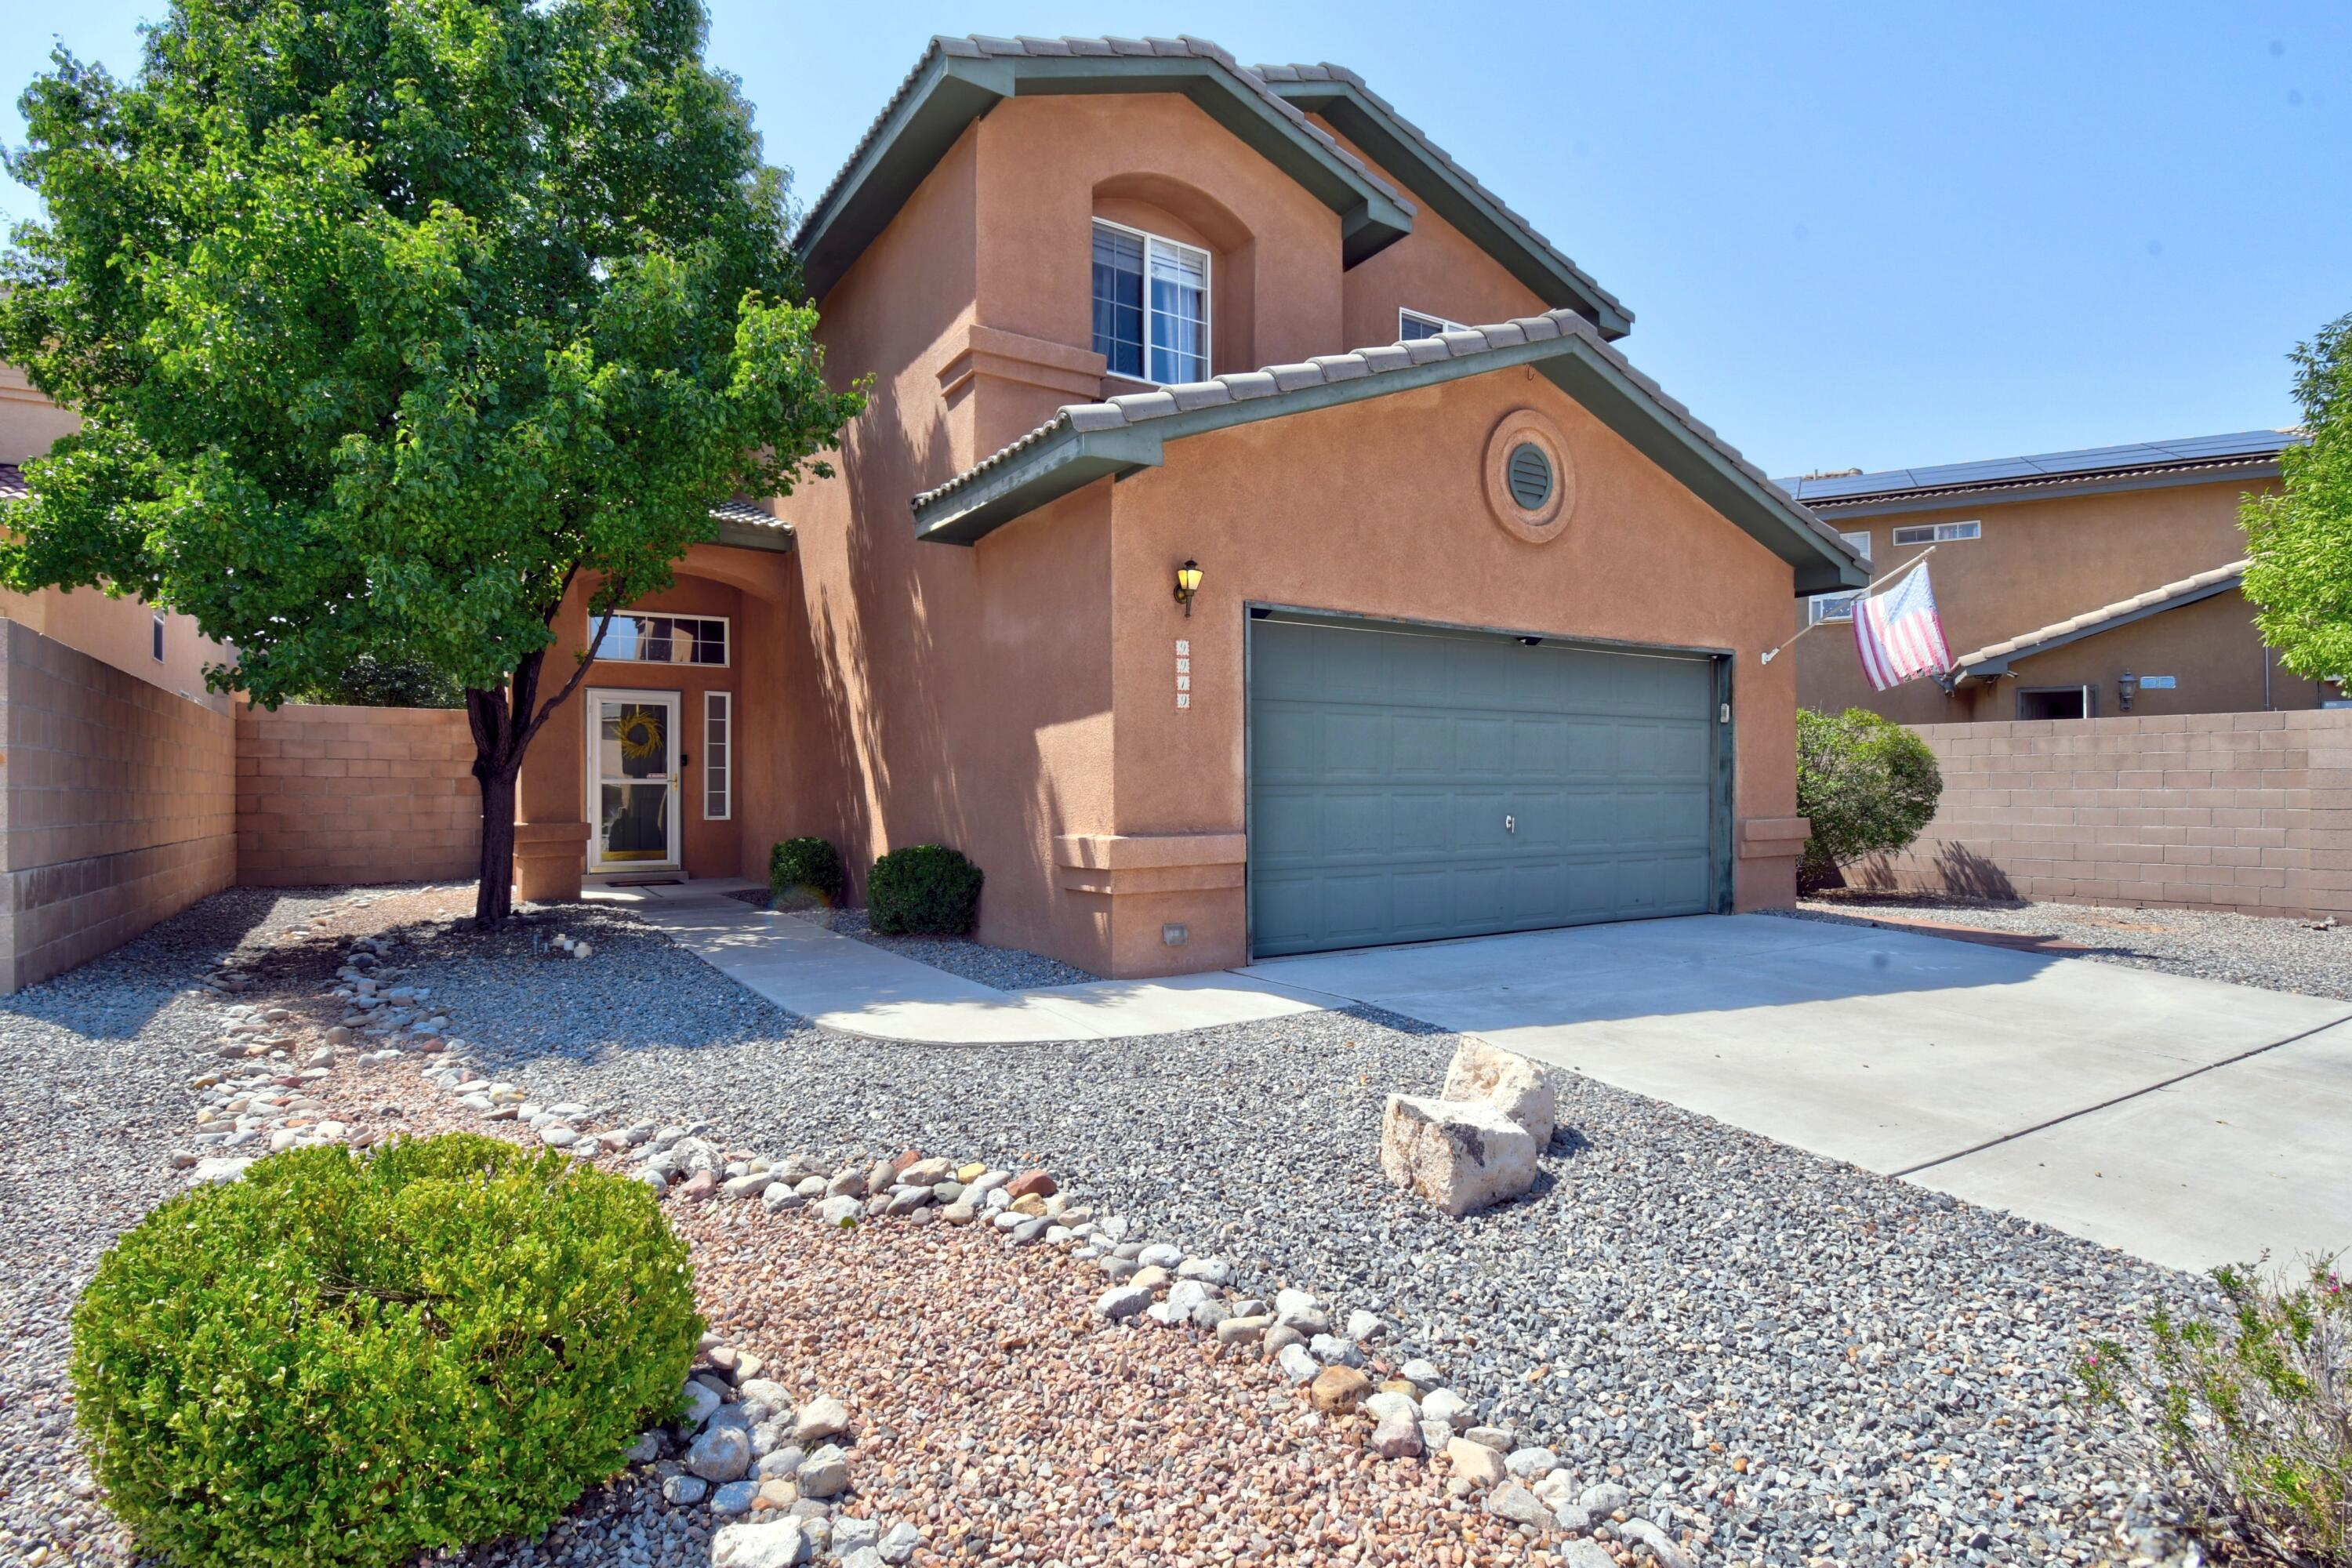 Oh, My Goodness!!! This Is One Of The Most Beautiful Homes You Will Ever Step Into In Paradise Ridge.   Offering just under 2200 feet of living space, this 4-bedroom 3 bath with a finished 2 car garage has had extensive improvements and up grades since the owners have lived here.  Completely remodeled kitchen with stainless steel appliances, cabinets, counter tops, and light fixtures.  It has a beautiful open floor plan with two living spaces as well an up stairs loft that can be a study, office or kids play area.  The master bedroom is generous with a large garden tub, separate shower, and double sinks.  All appliances convey including the front-loading washer and dryers. The back yard is a dream for the family who likes to entertain or enjoy the peace and and tranquility of the evening.